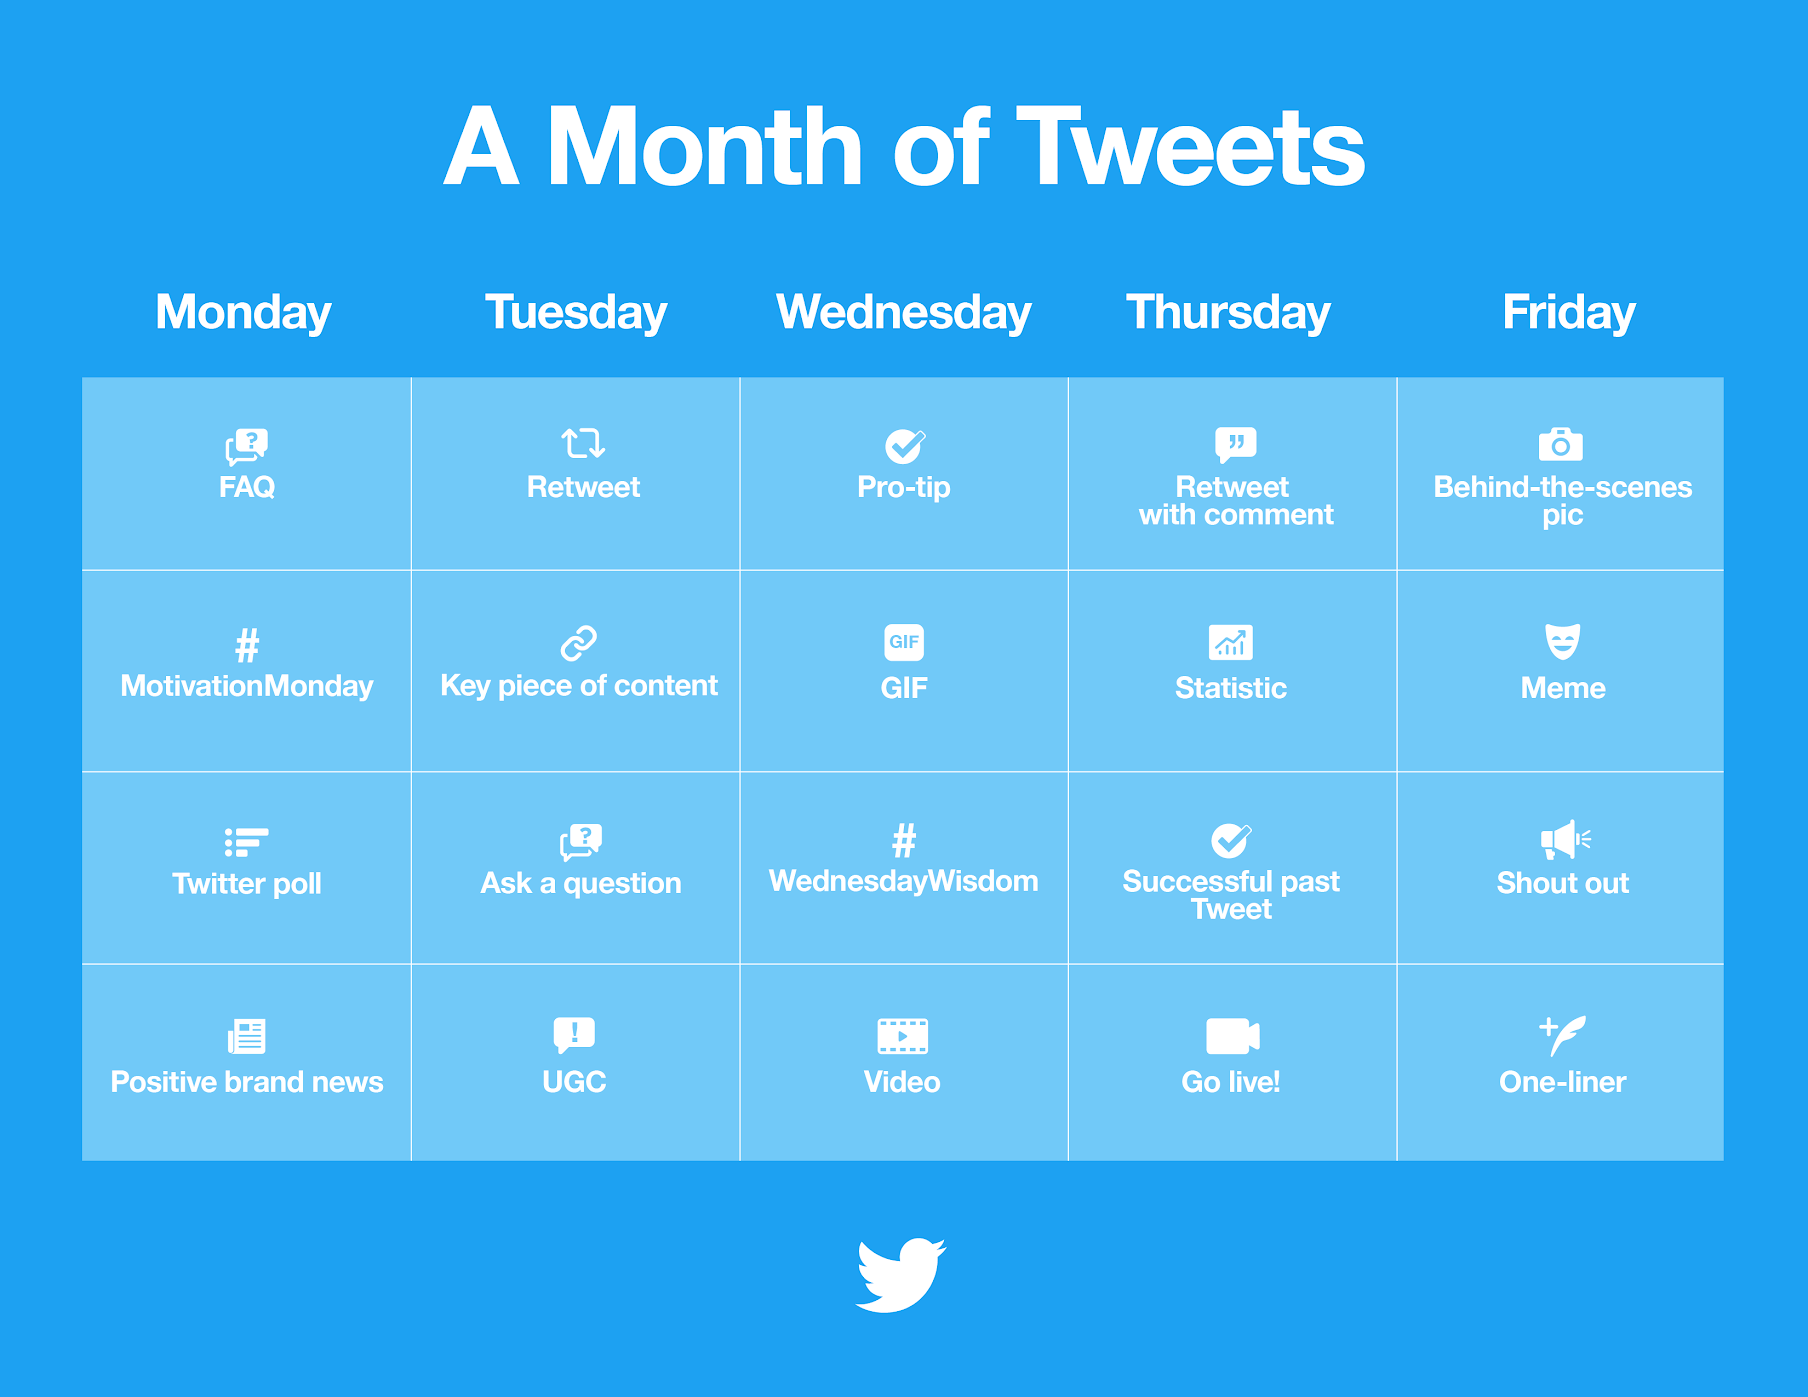 A month of Tweet ideas for brands on Twitter